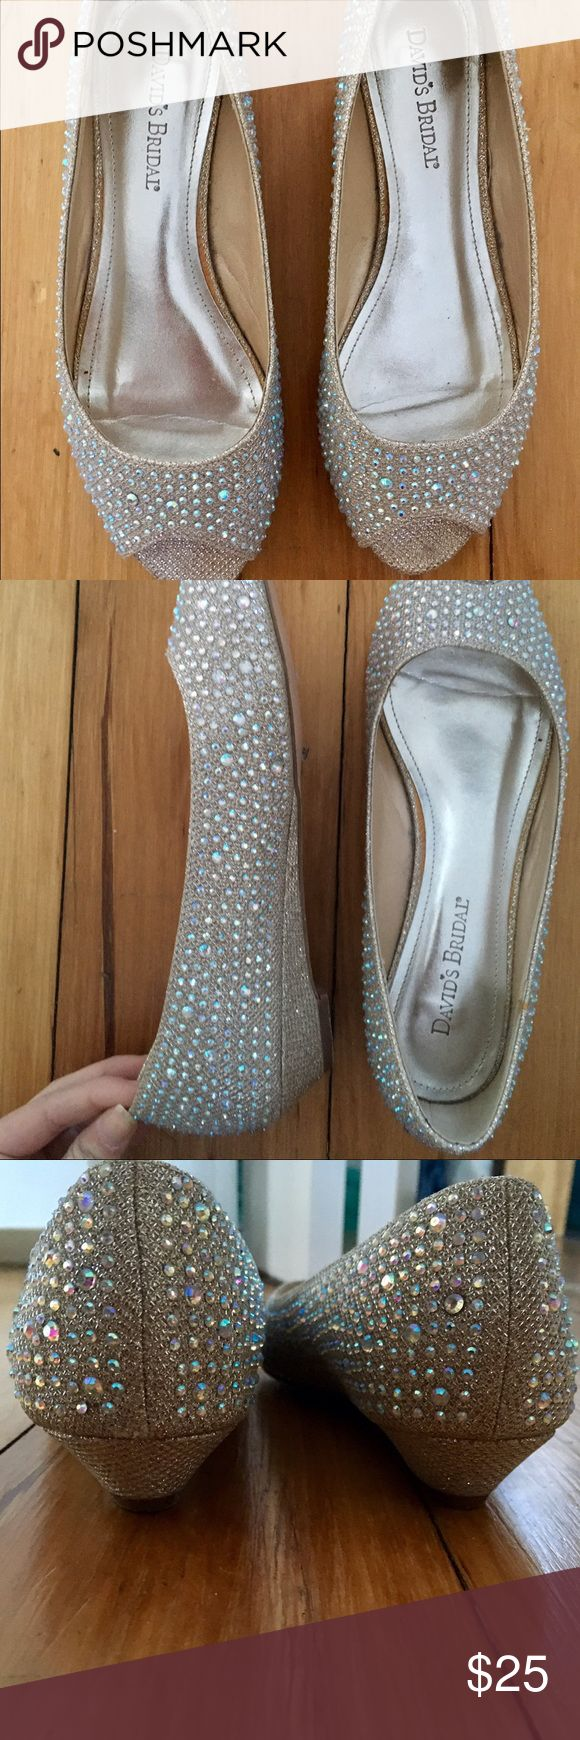 David's Bridal Flats David's Bridal. Size 8. Silver sparkles with a hint of gold. Worn once to a dance. Light scuffing on bottom of shoes (soles). Otherwise in perfect condition. Terrific for a formal dance or special occasion. David's Bridal Shoes Flats & Loafers